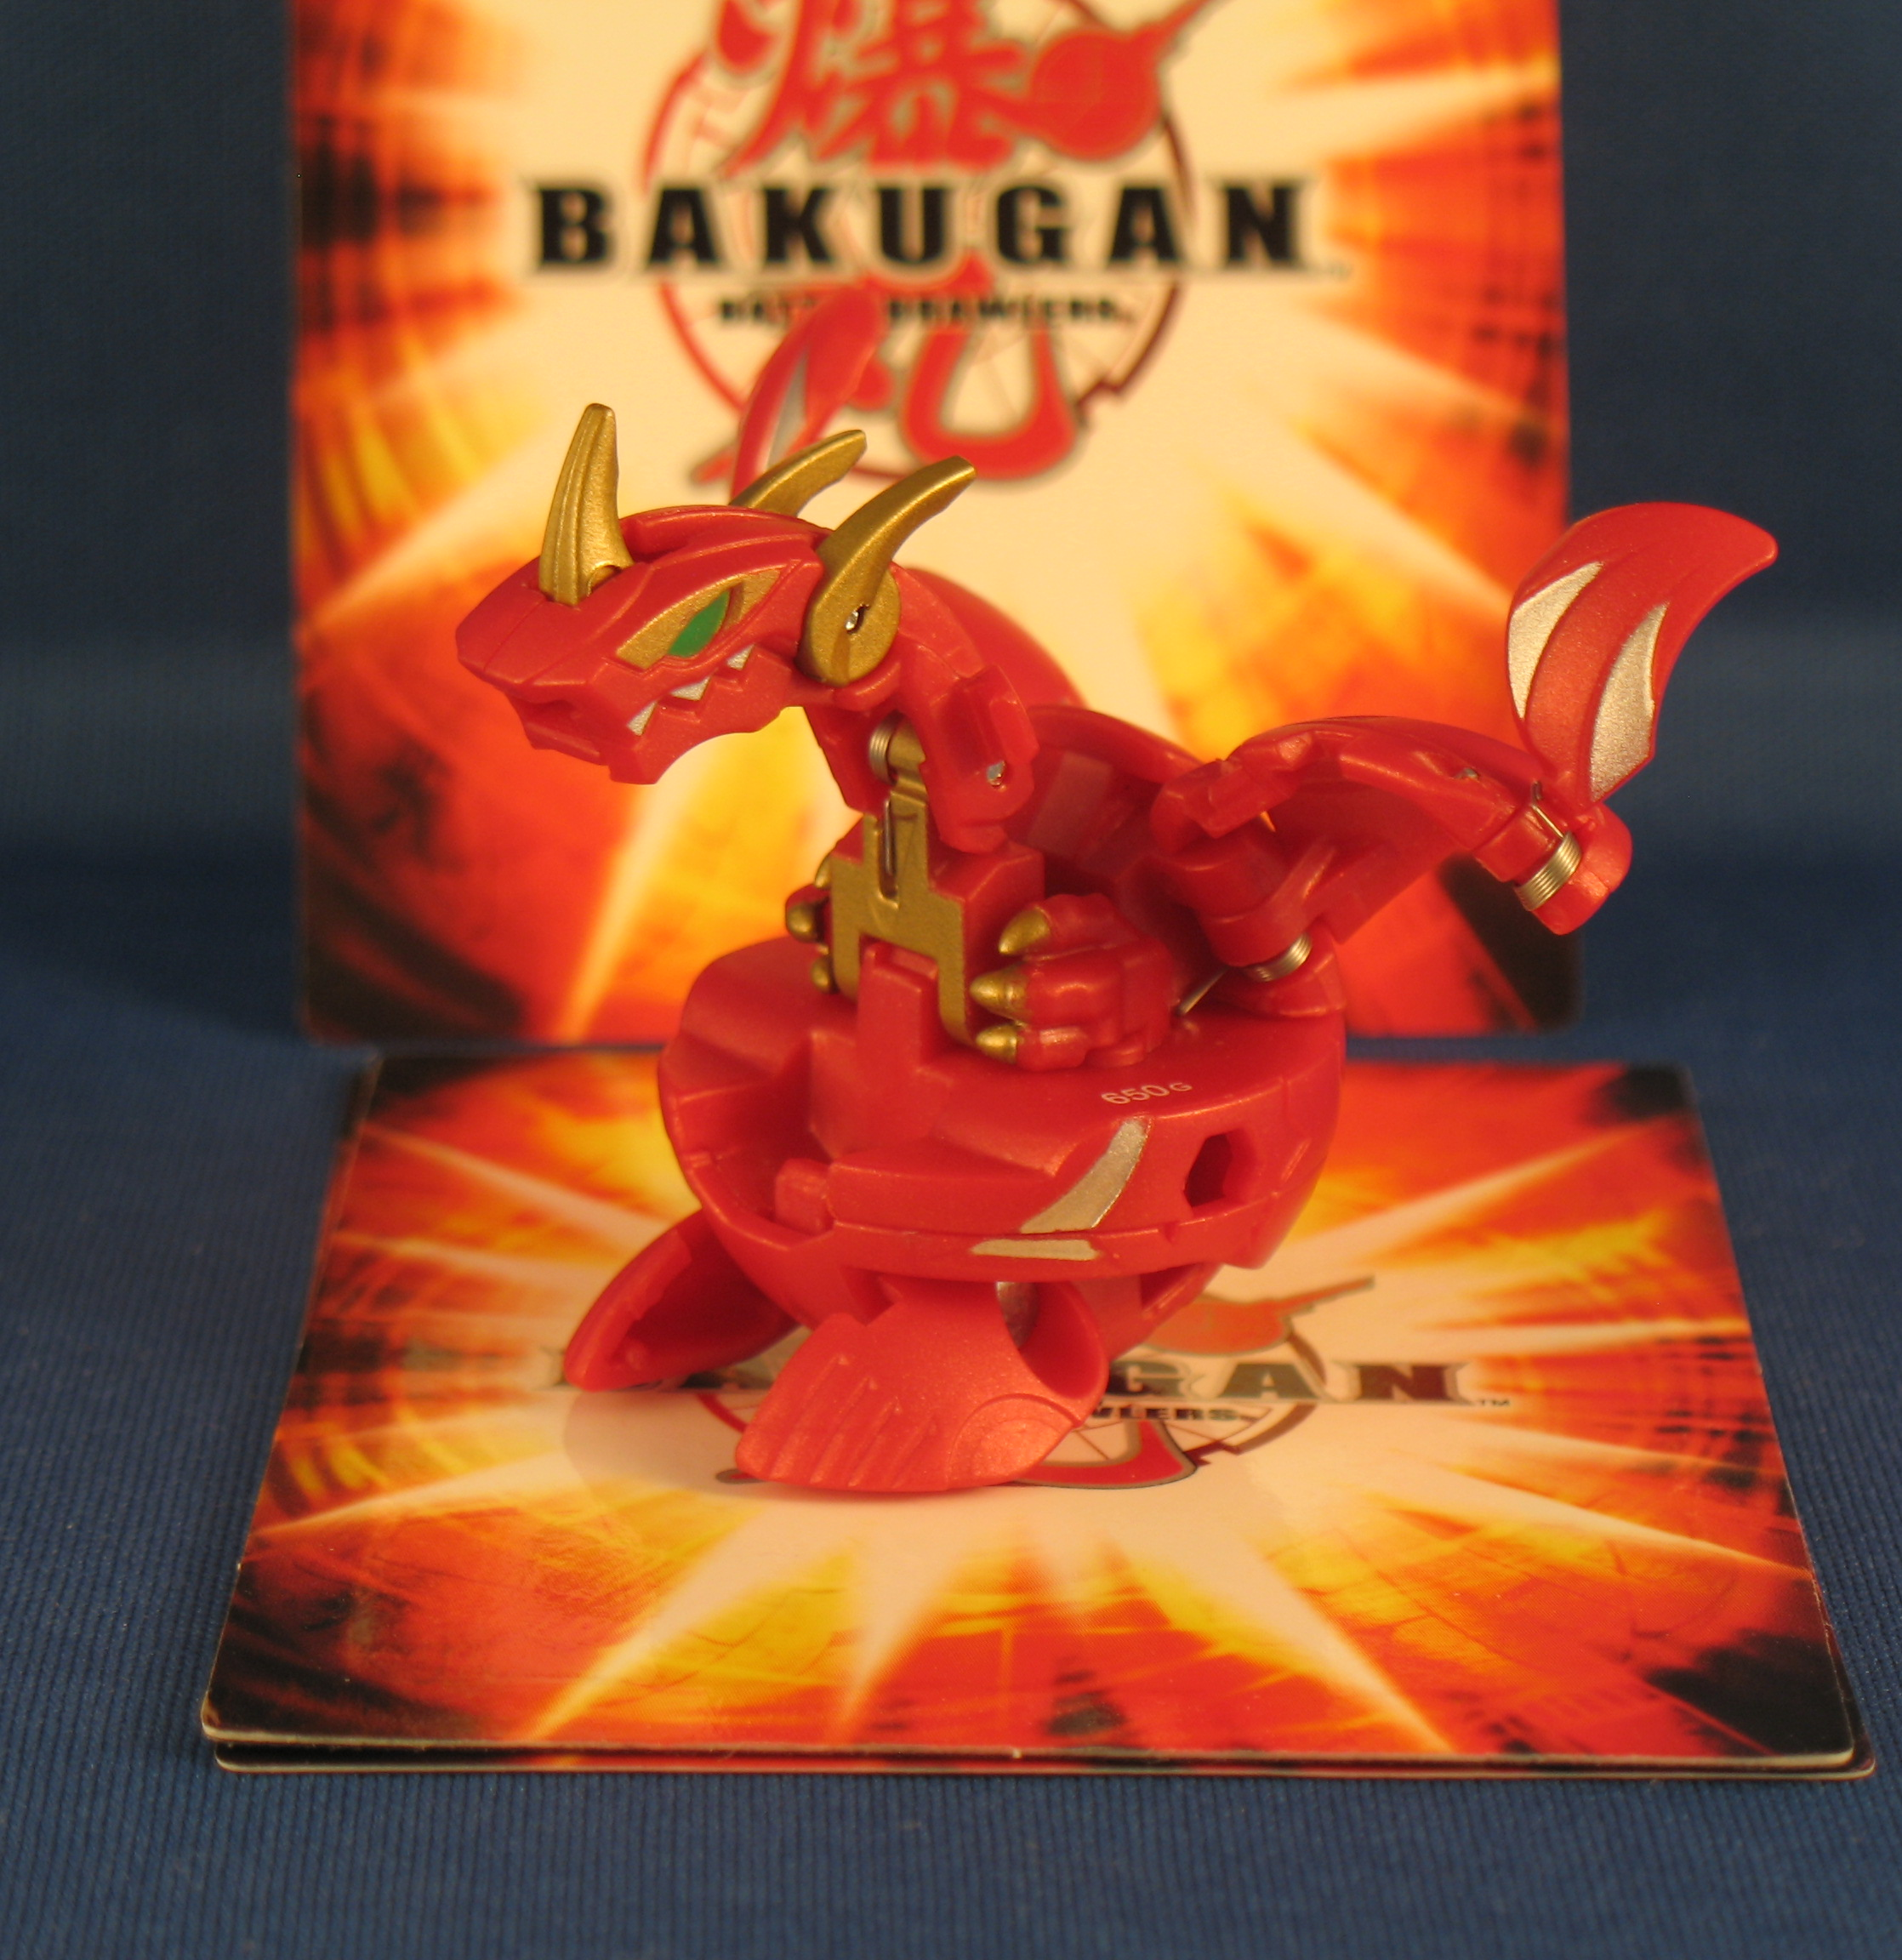 NEO DRAGONOID MAXUS DRAGONOID SPECIAL EDITION Neo Dragonoid Bakugan (Core of 7in1 Maxus Dragonoid)